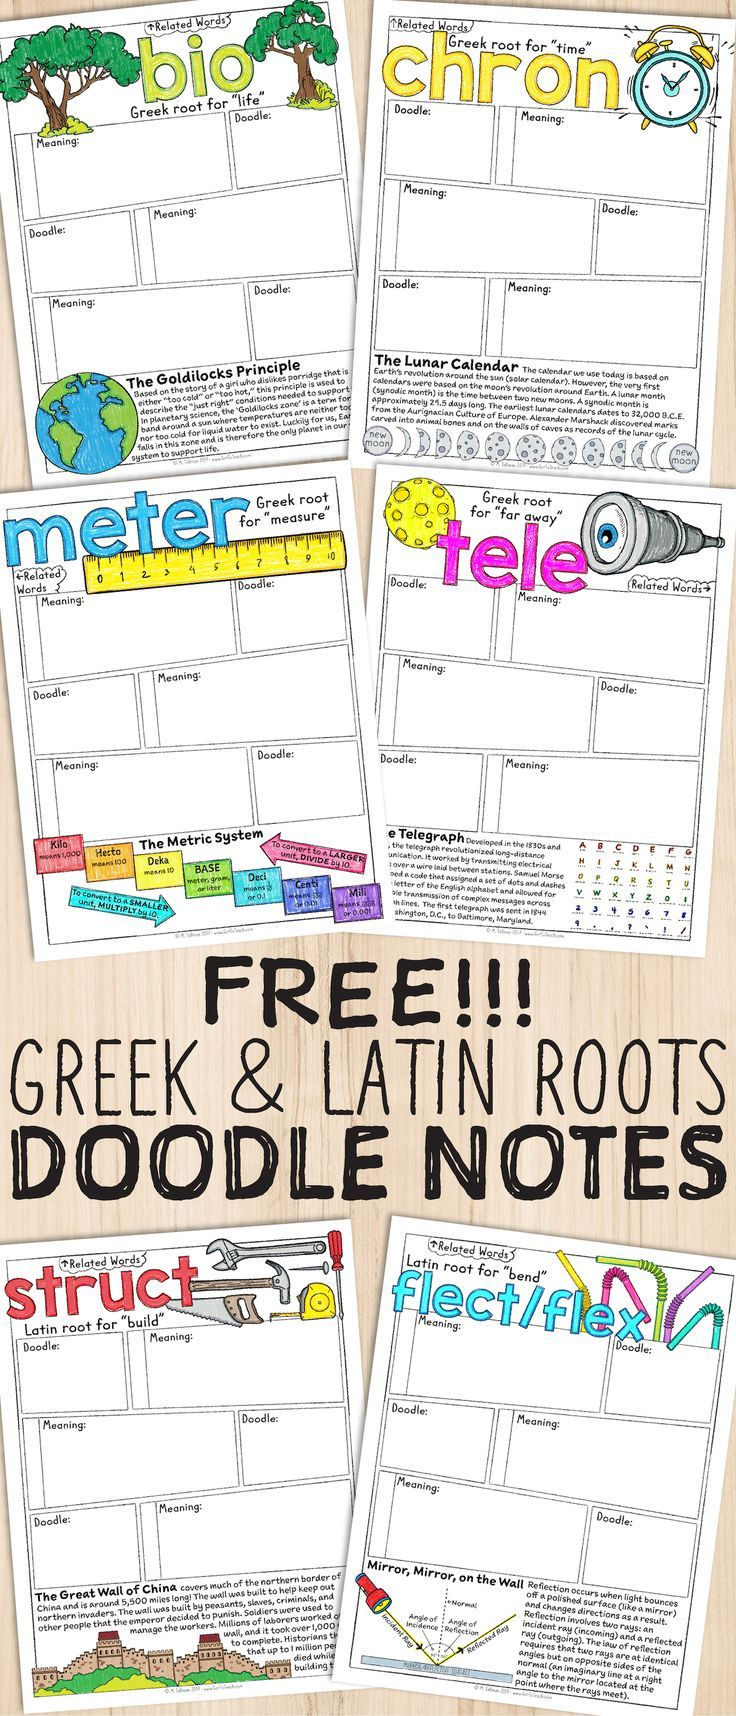 Free Greek And Latin Roots Sketch Notes | Literacy Teaching - Free Printable Greek And Latin Roots